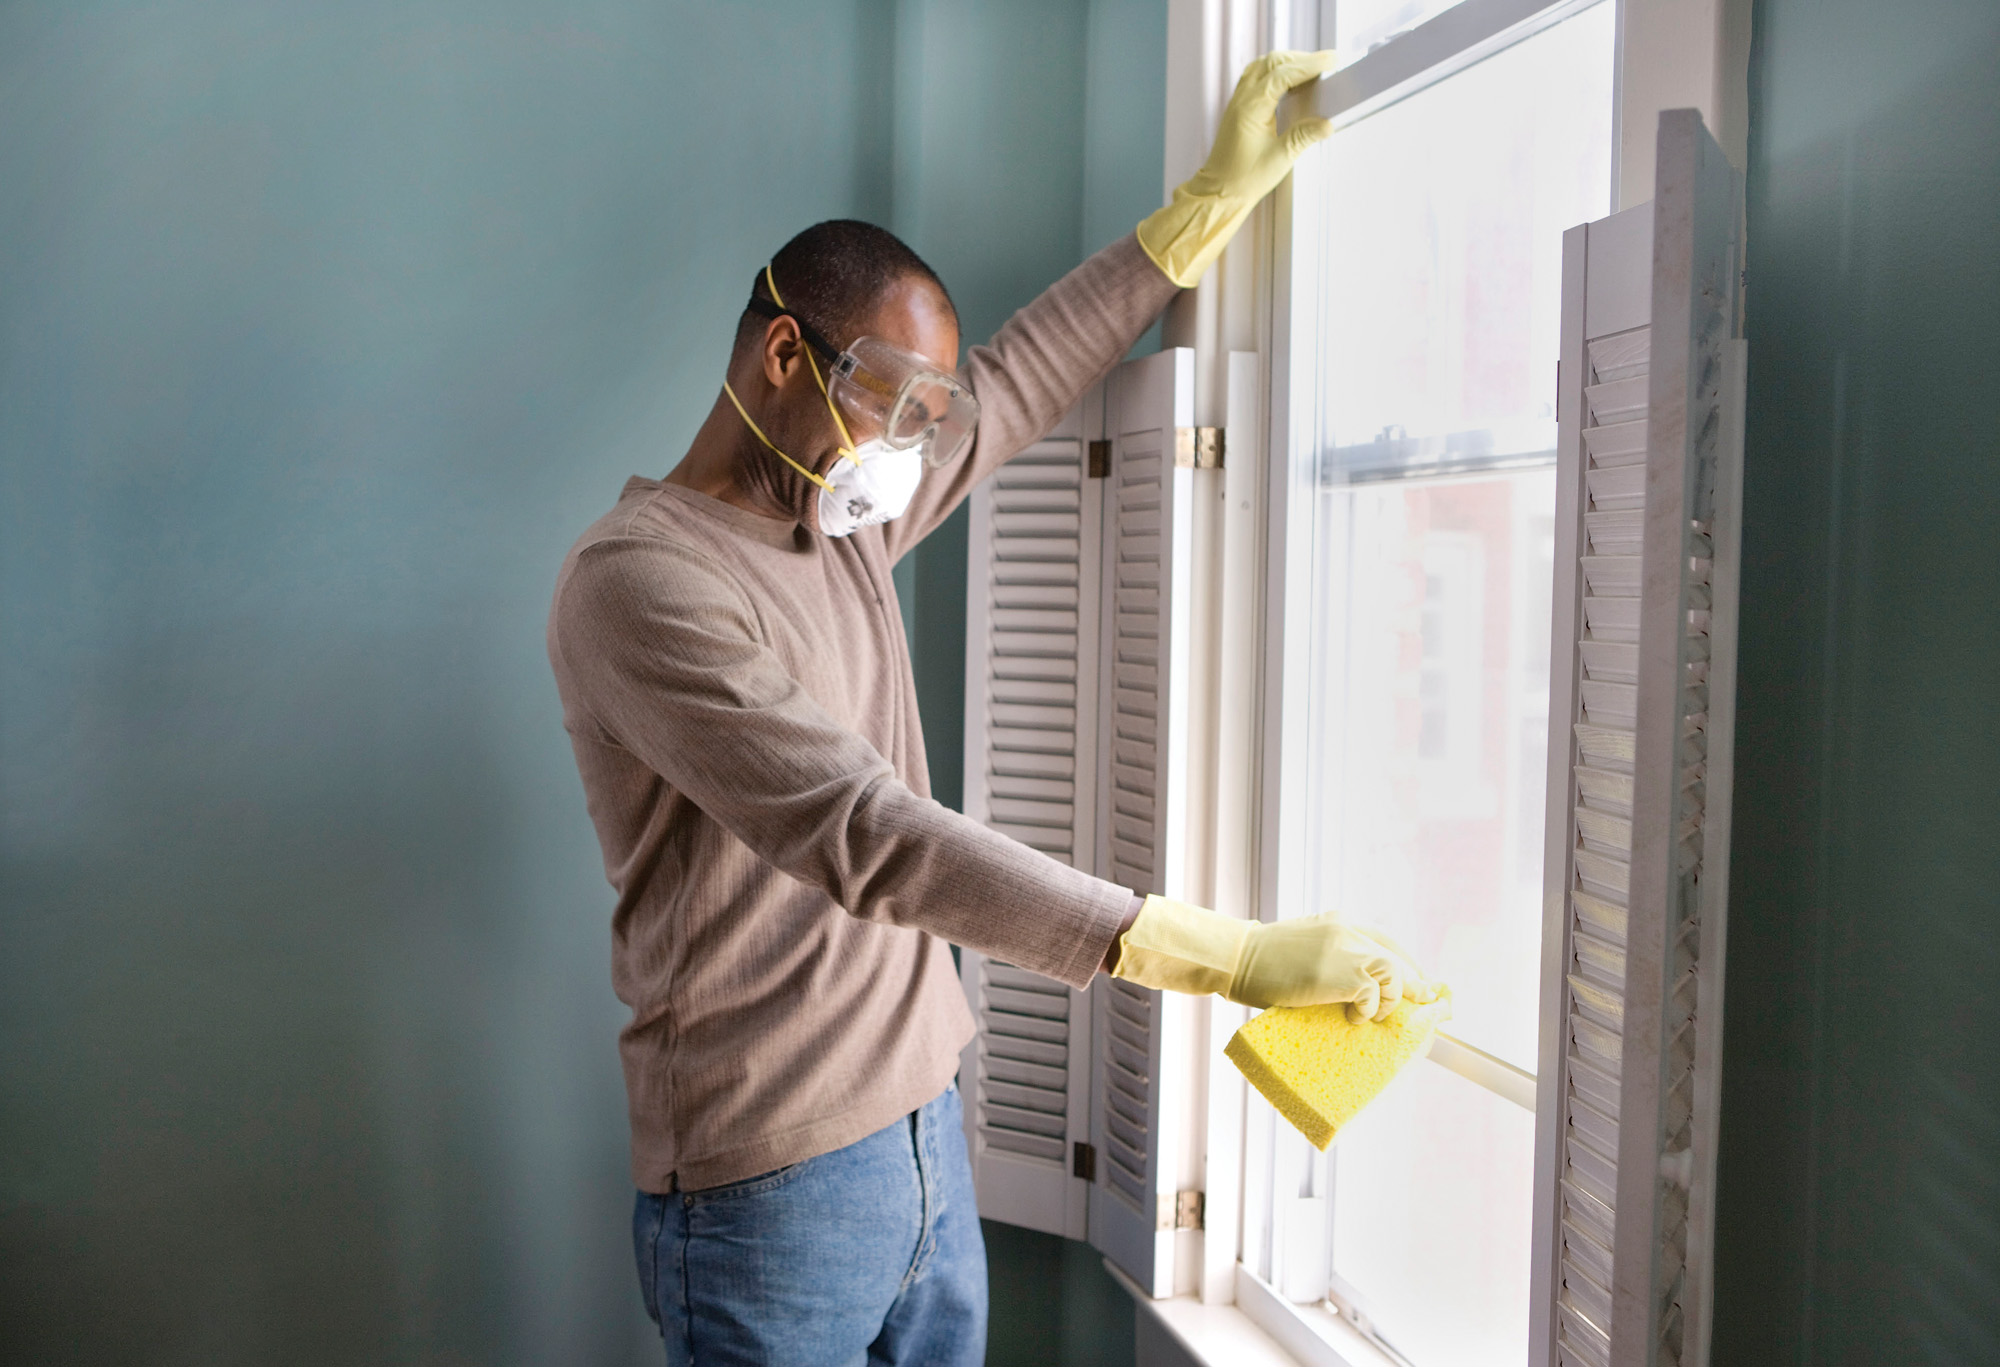 Because mold spores can aversely affect your health, wear gloves, goggles, and a mask when cleaning affected areas.